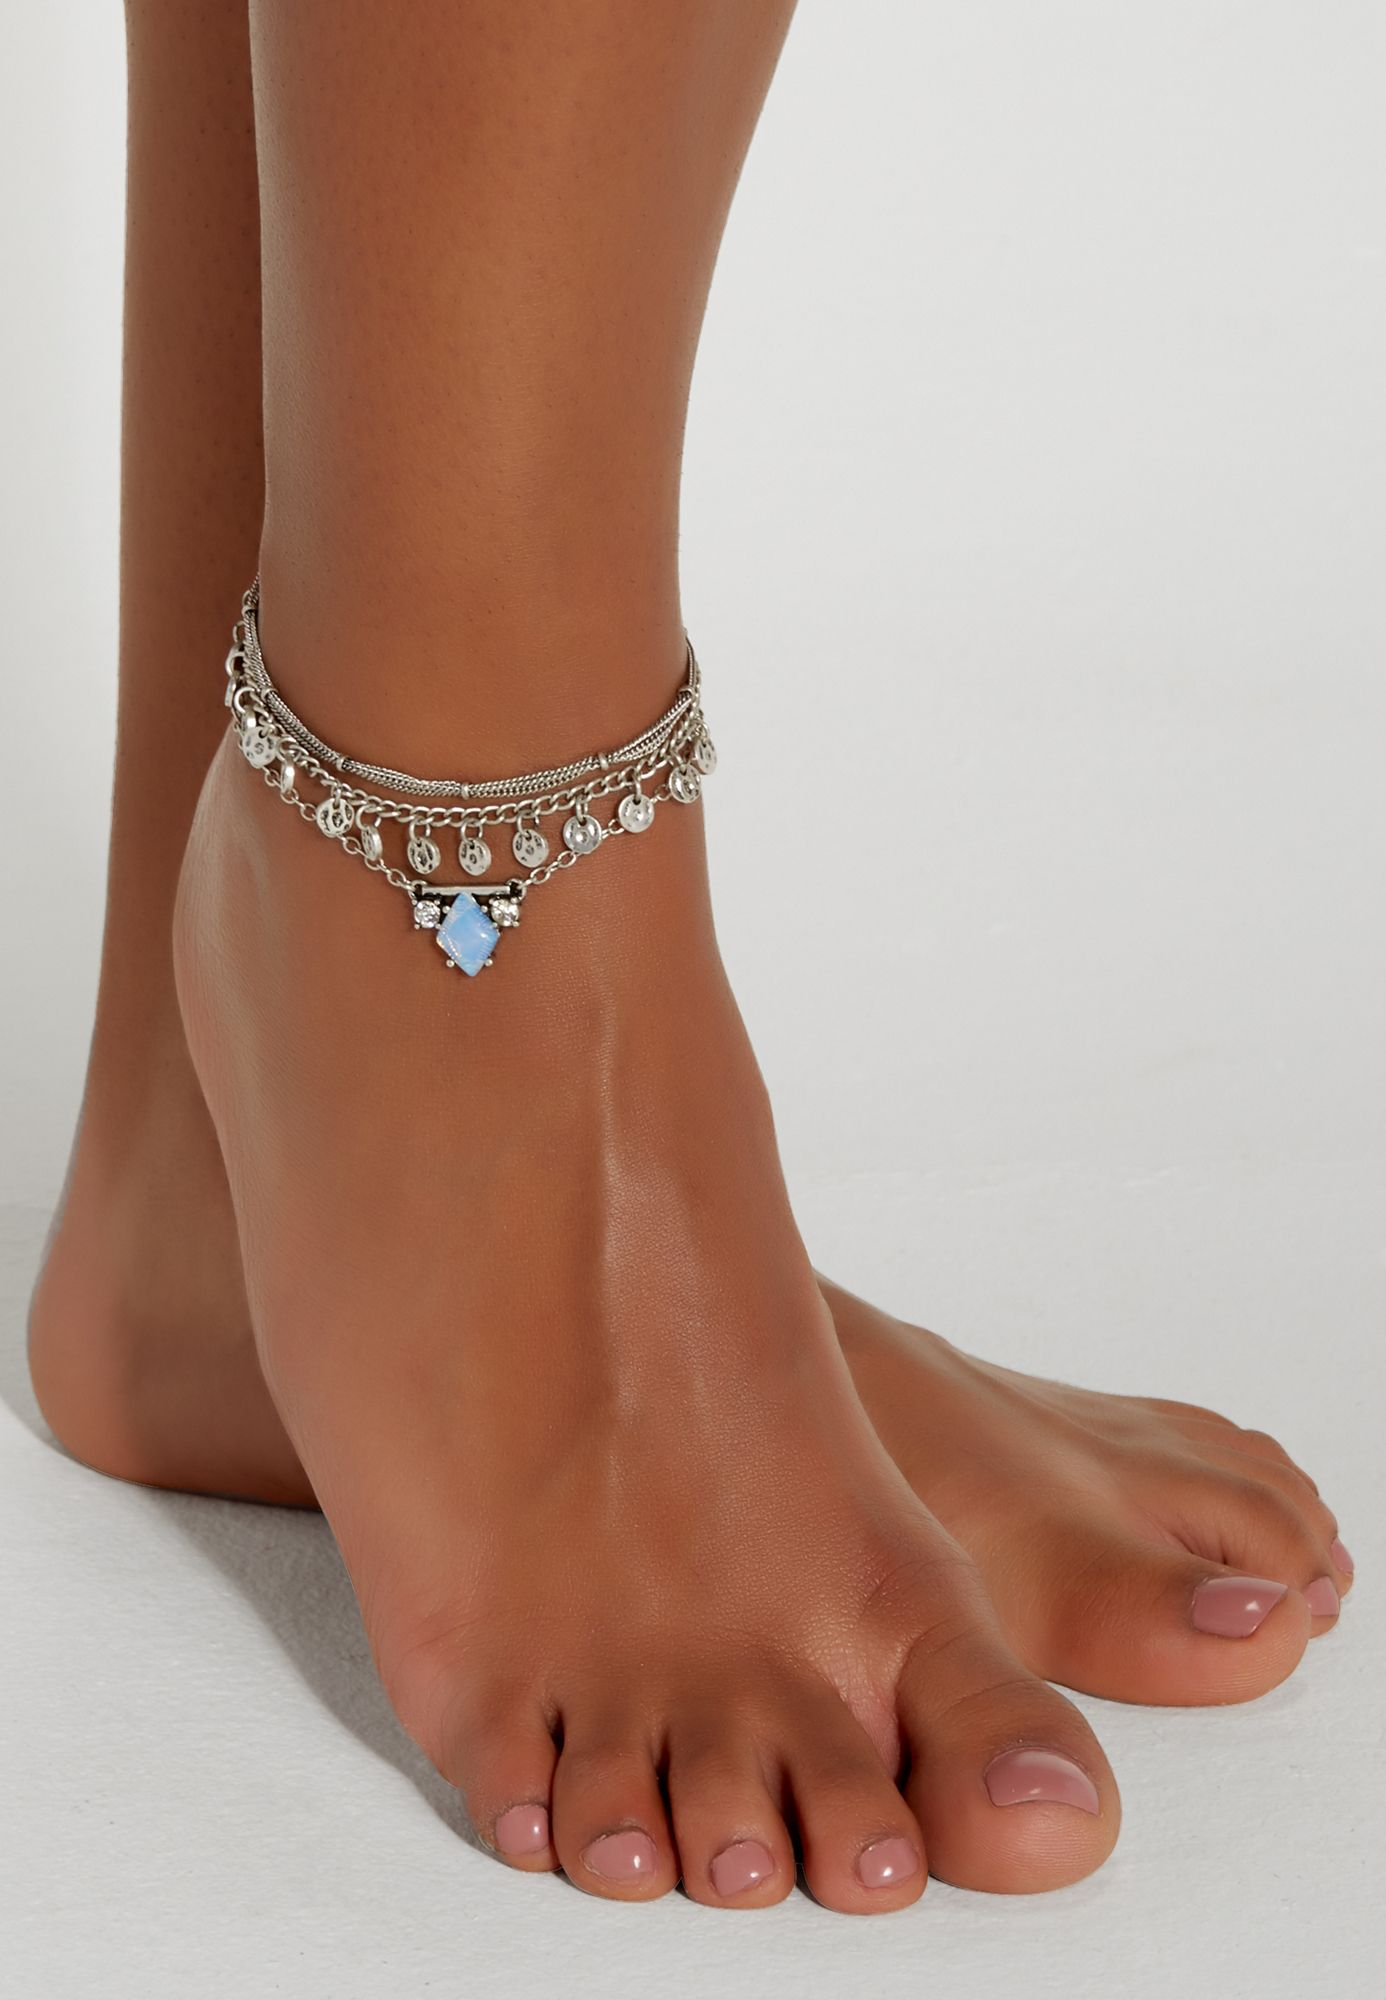 leather all vermeil anklet bracelets hearts bracelet view ja az sterling bling silver women dangling ankle heart for jewelry adjustable gold appl